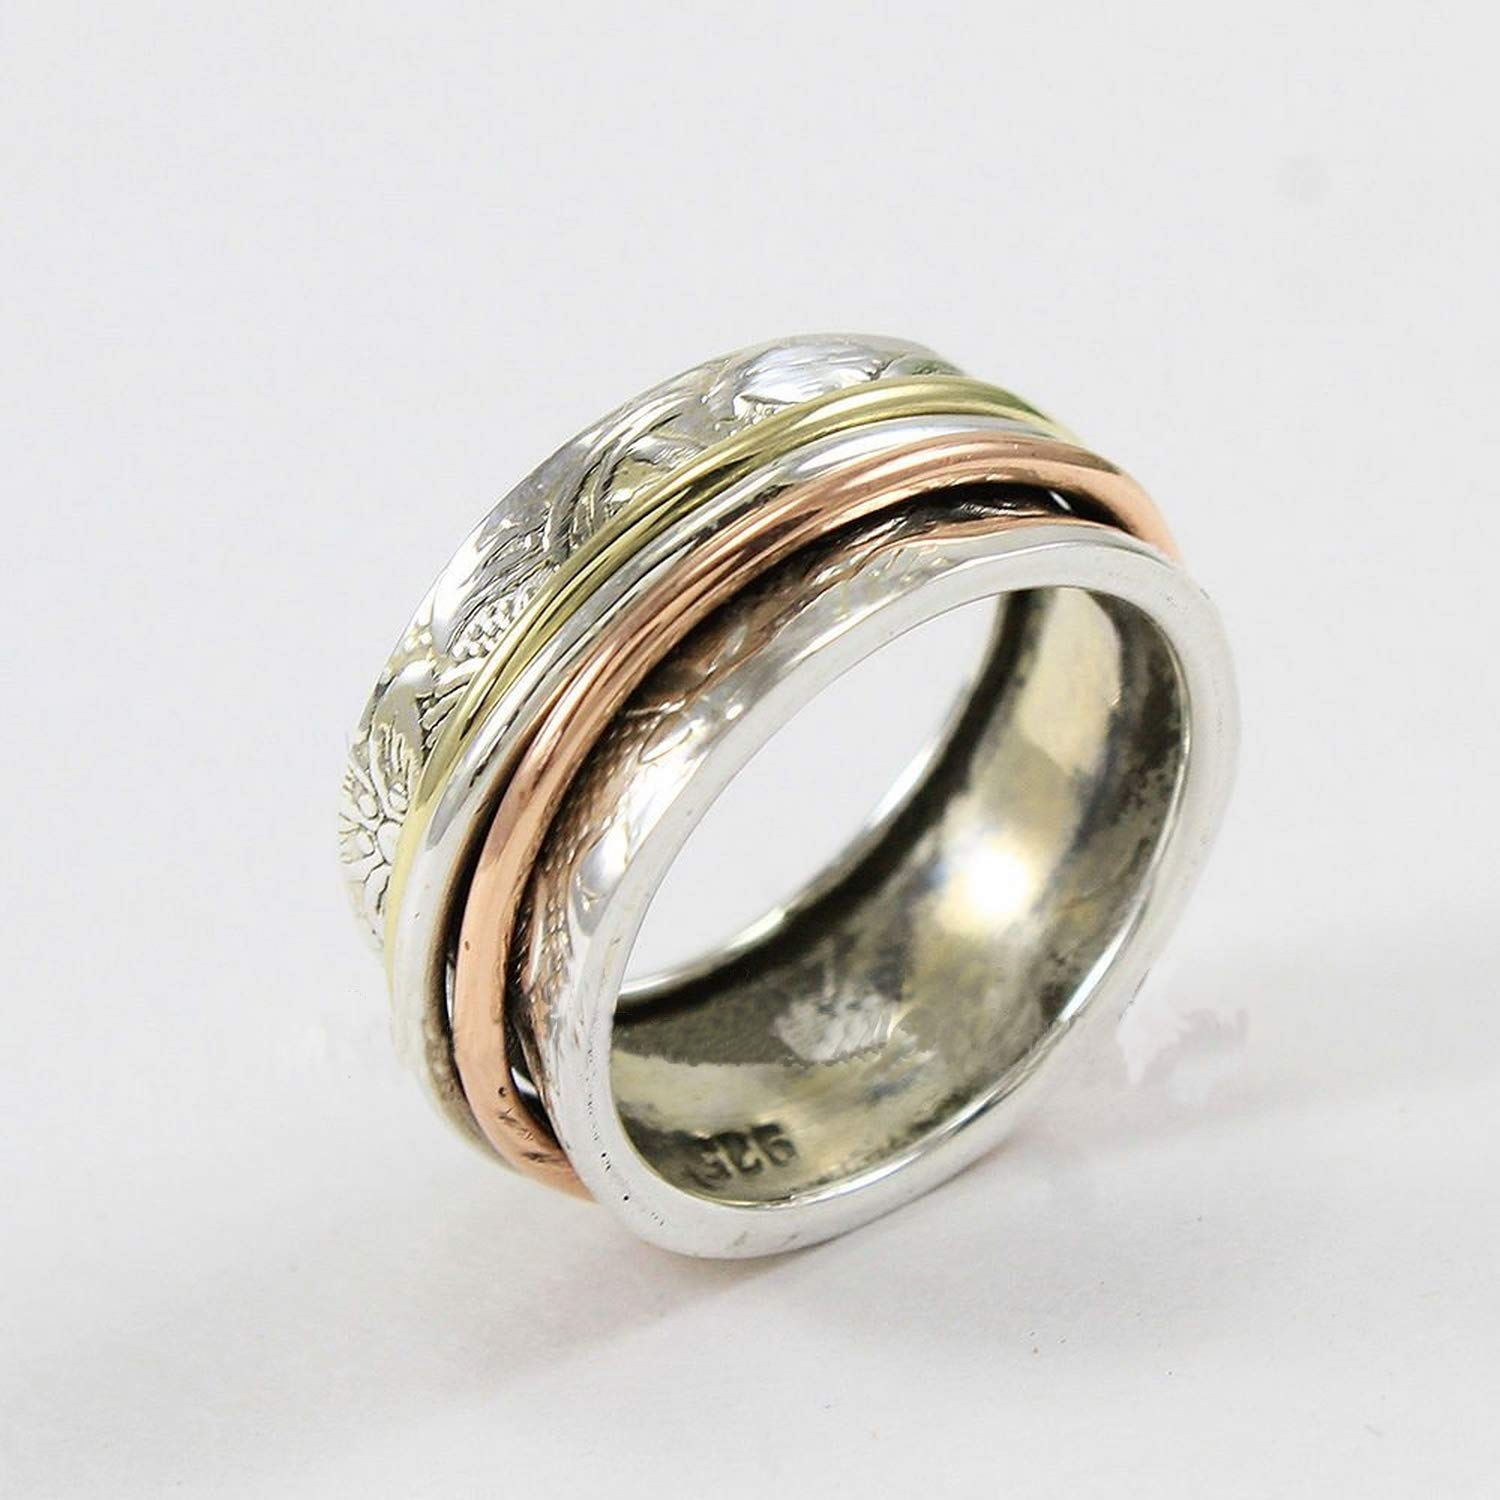 Statement Ring Meditation Ring Fidget Ring Rotating Ring Silver Spinner Ring Patterned Spin Ring Worry Ring Spinning Ring